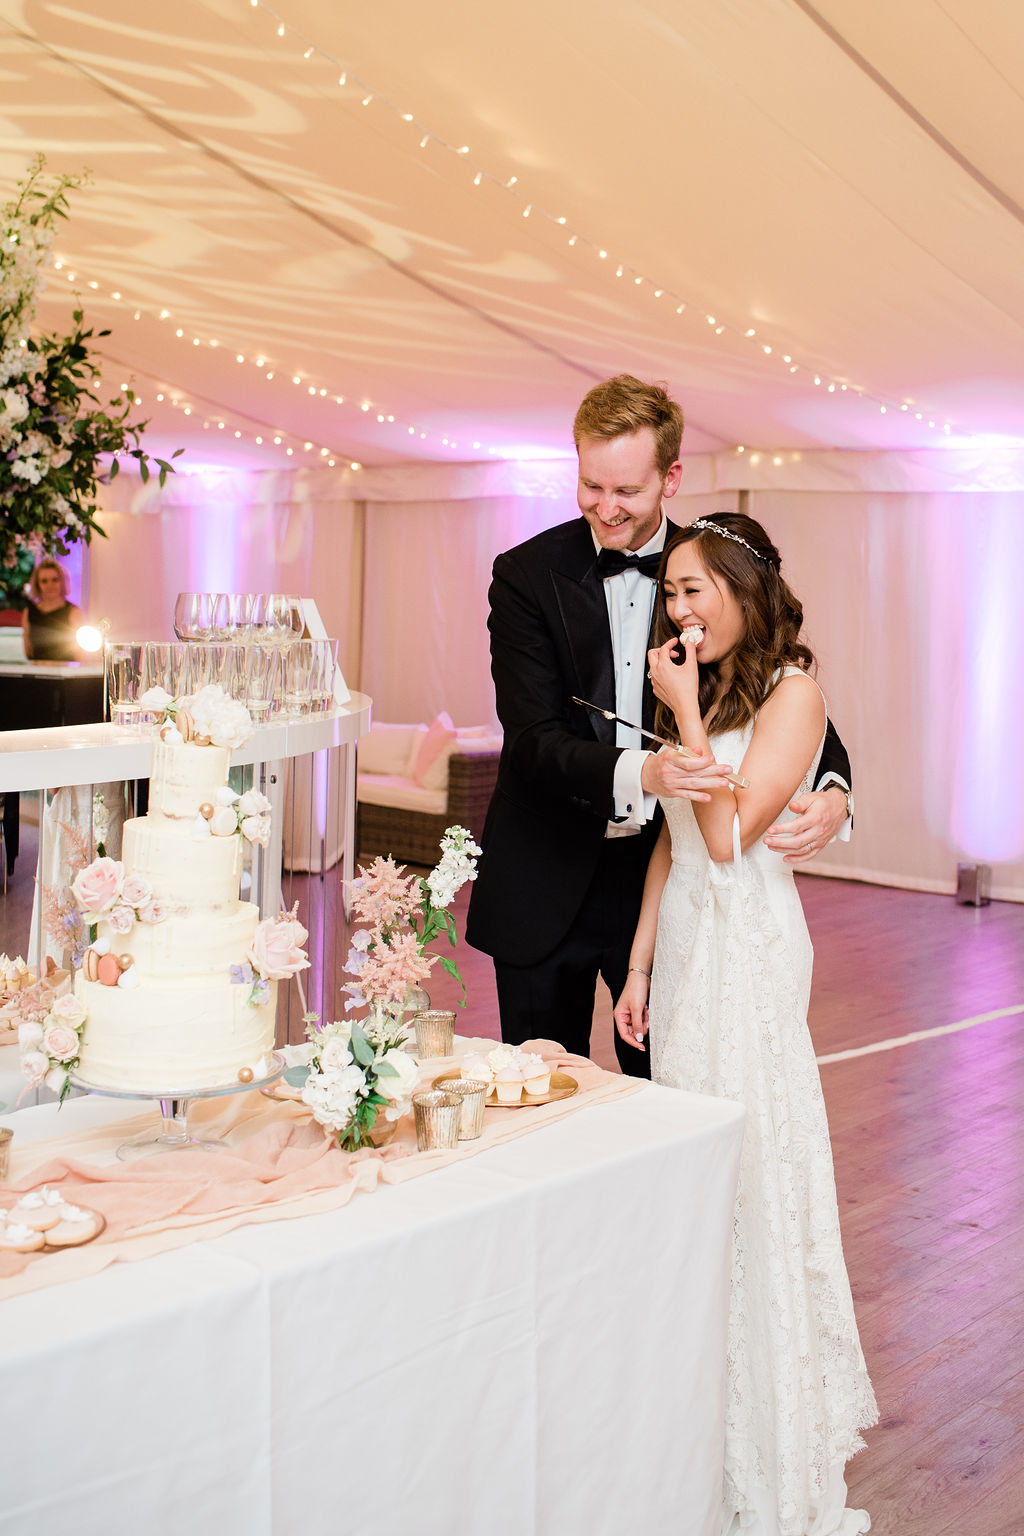 Cake cutting at Chiswick House wedding, London | Sugar Plum Bakes